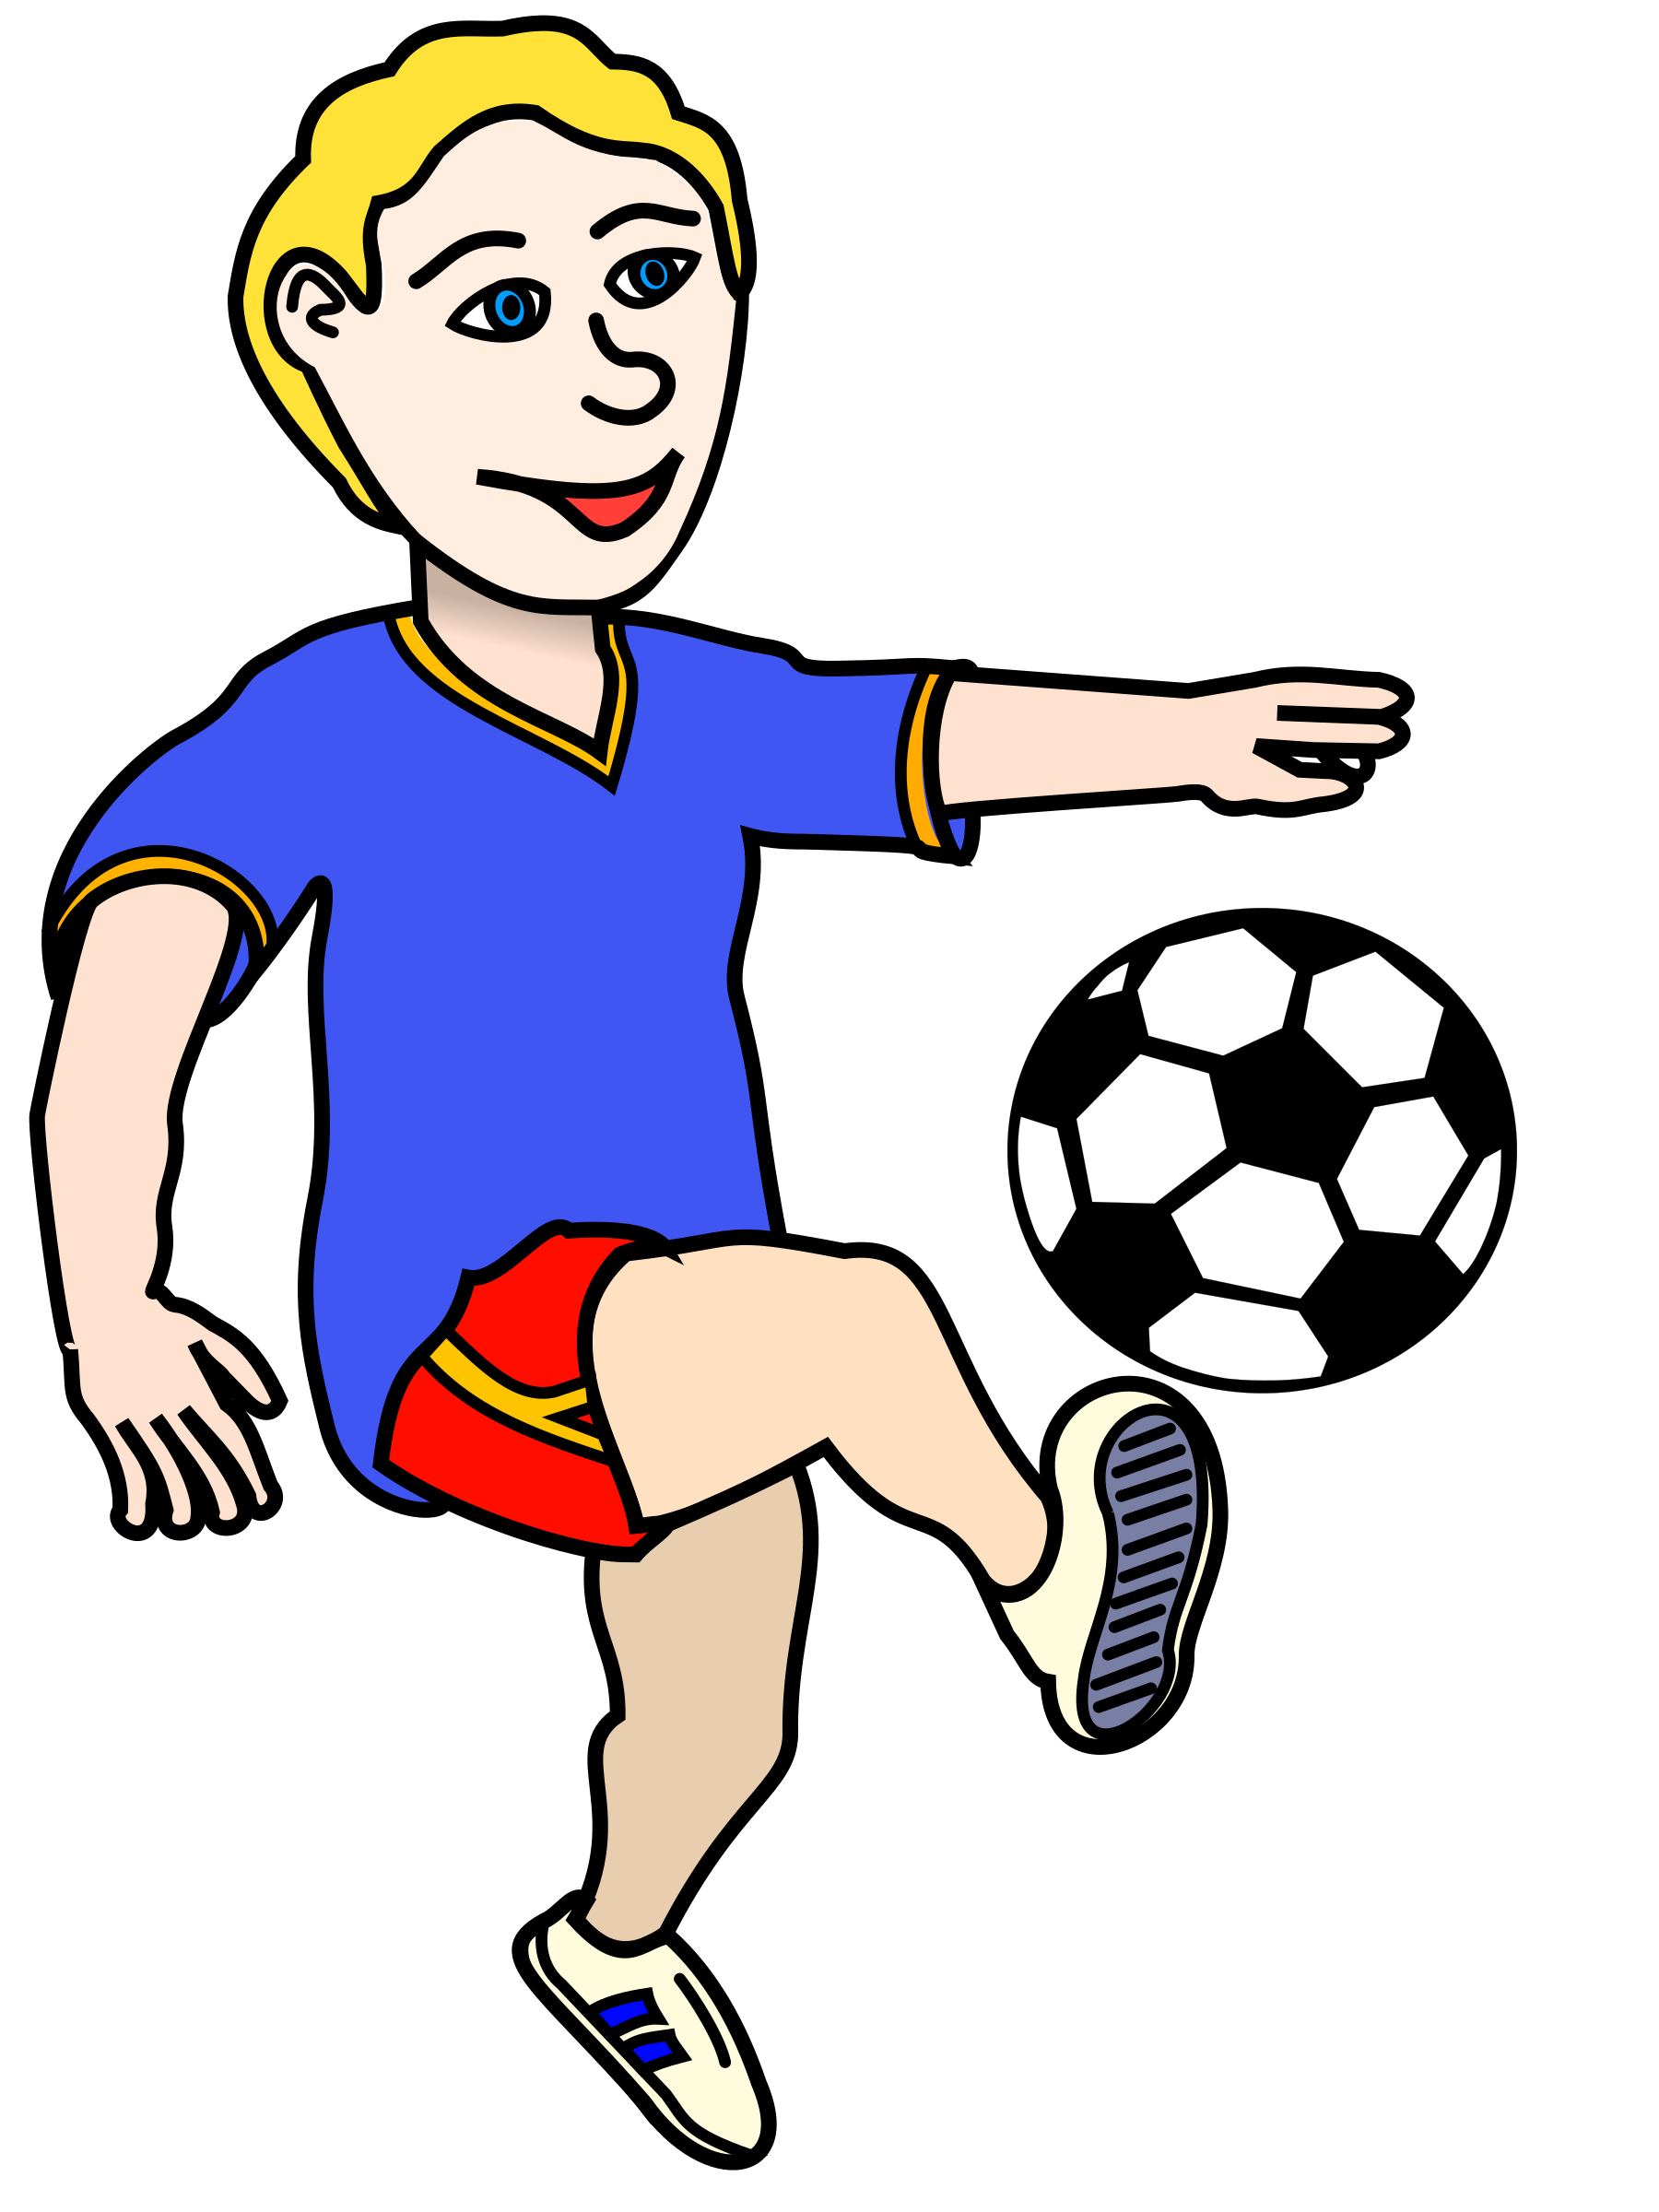 Boys playing football clipart graphic freeuse stock Soccer Player Clipart at GetDrawings.com | Free for personal use ... graphic freeuse stock